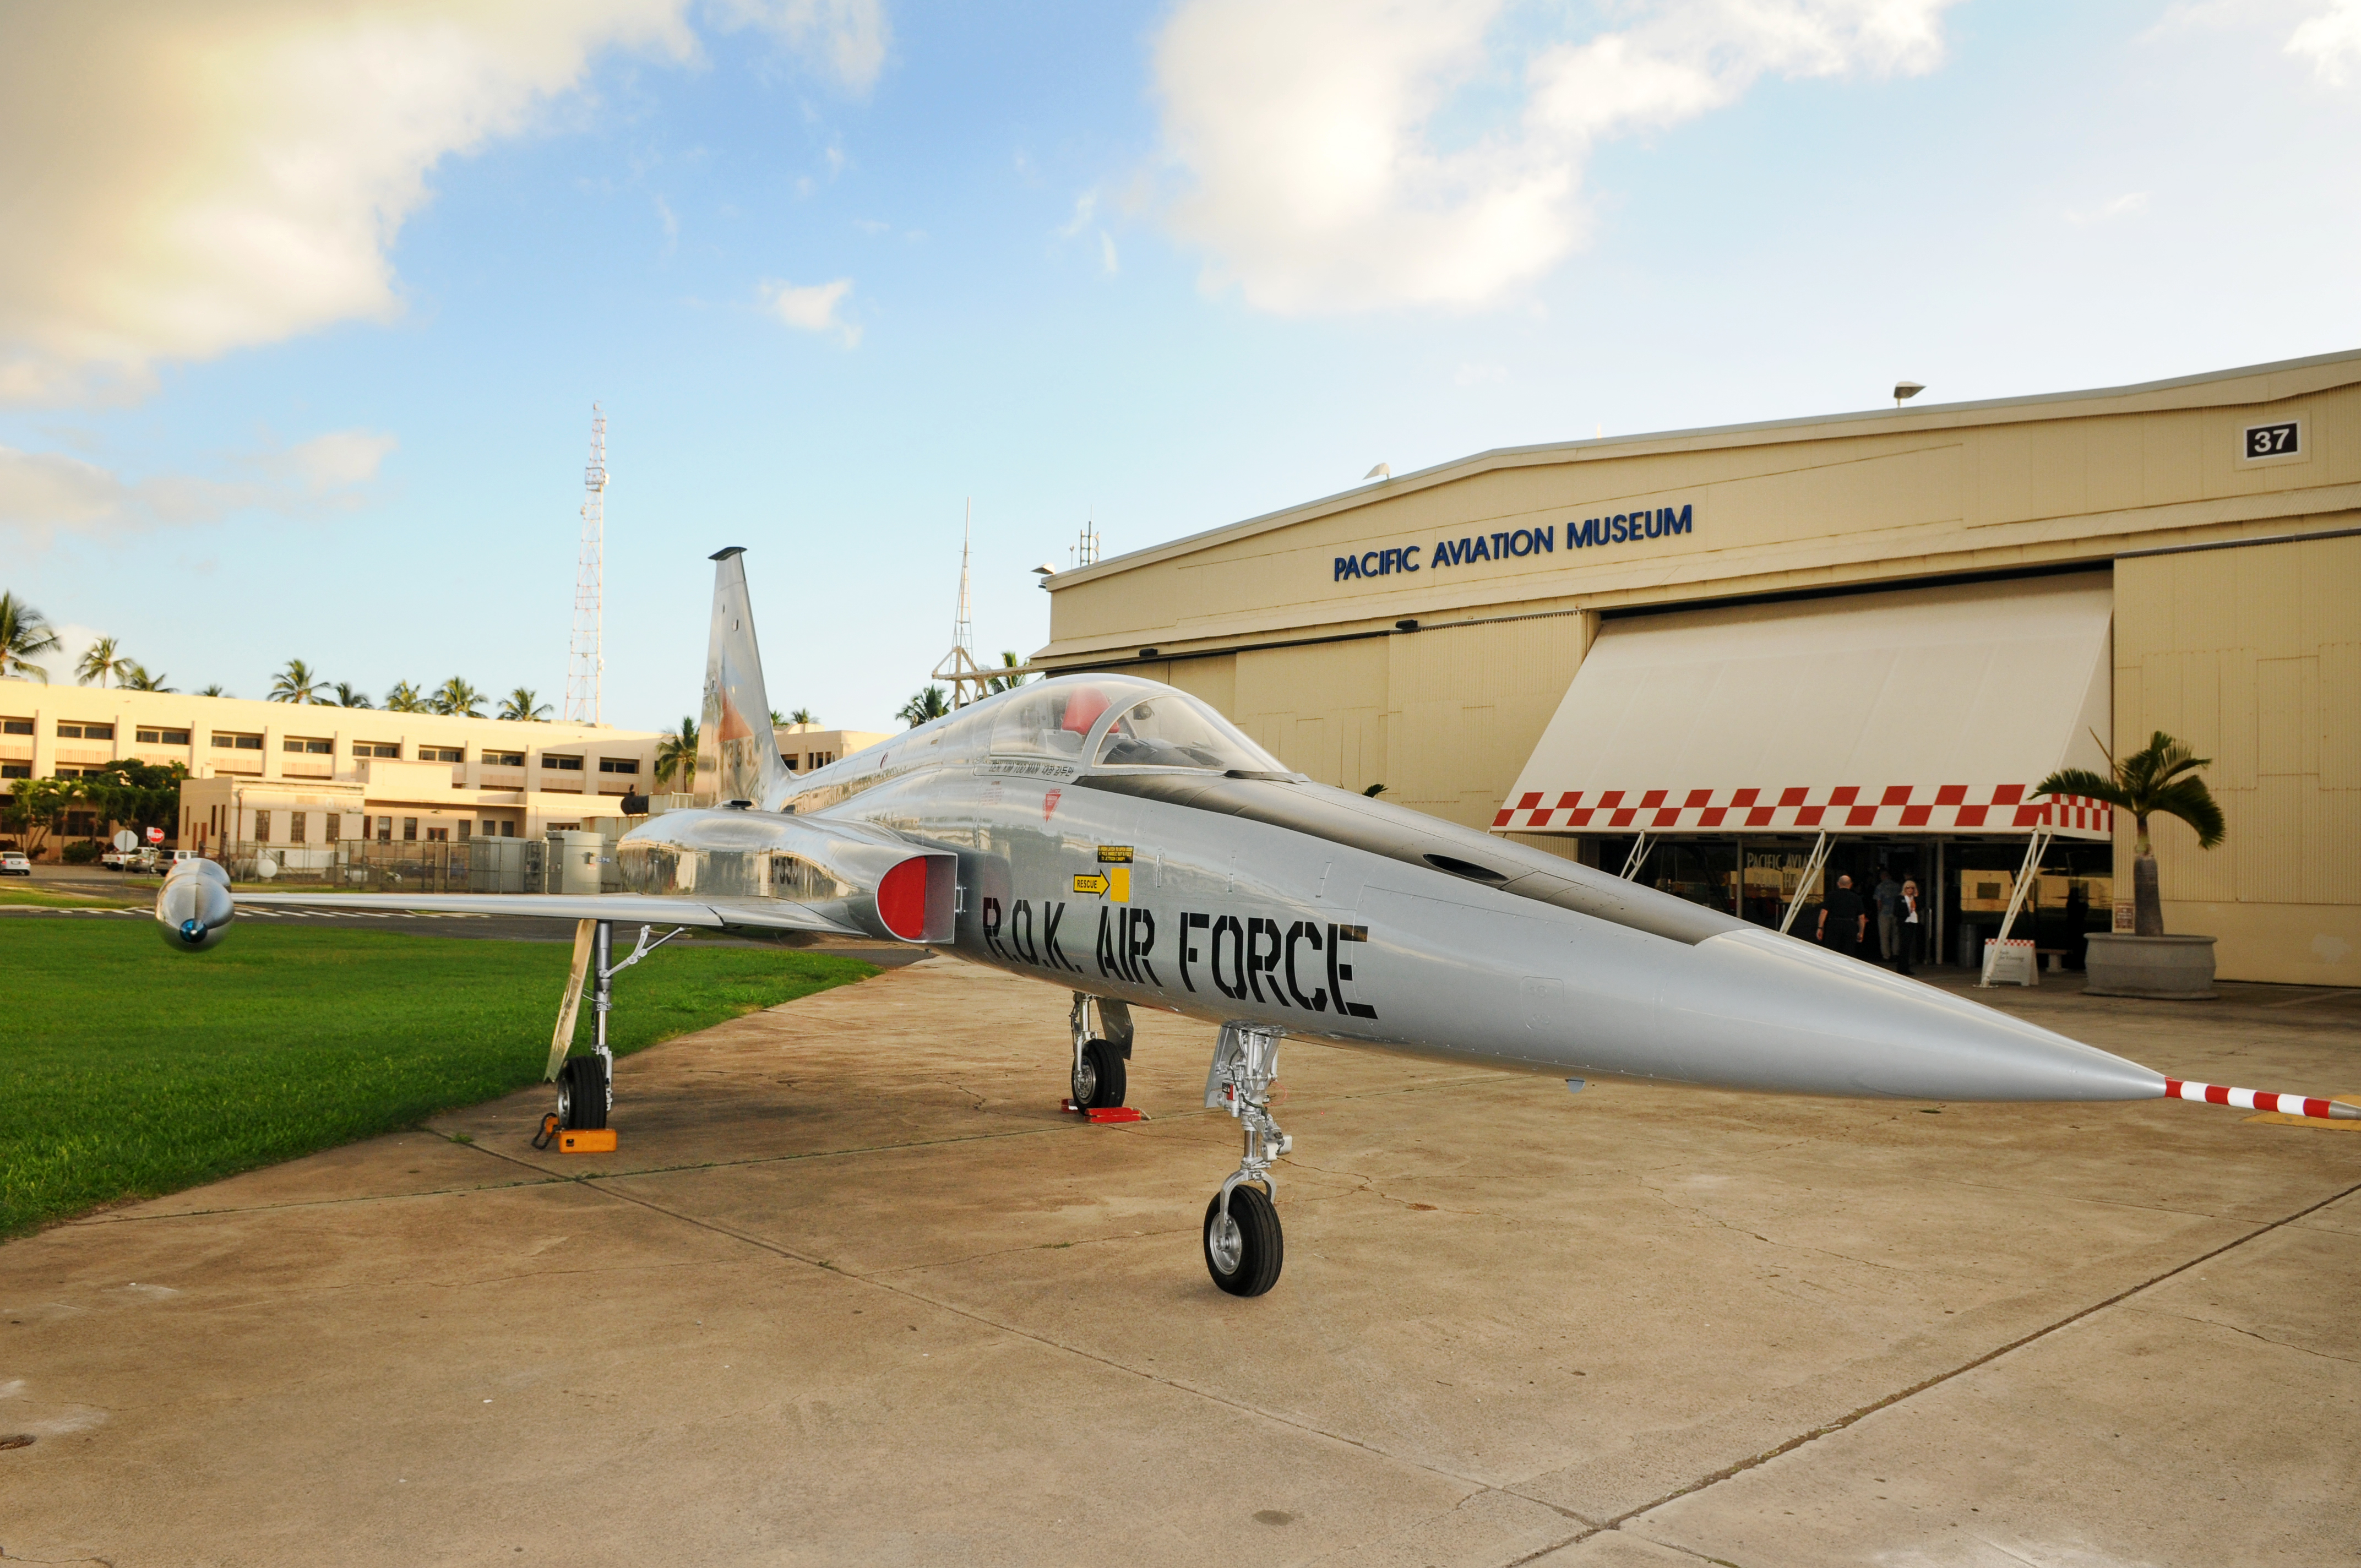 gray air force plane in front of the pacific aviation museum